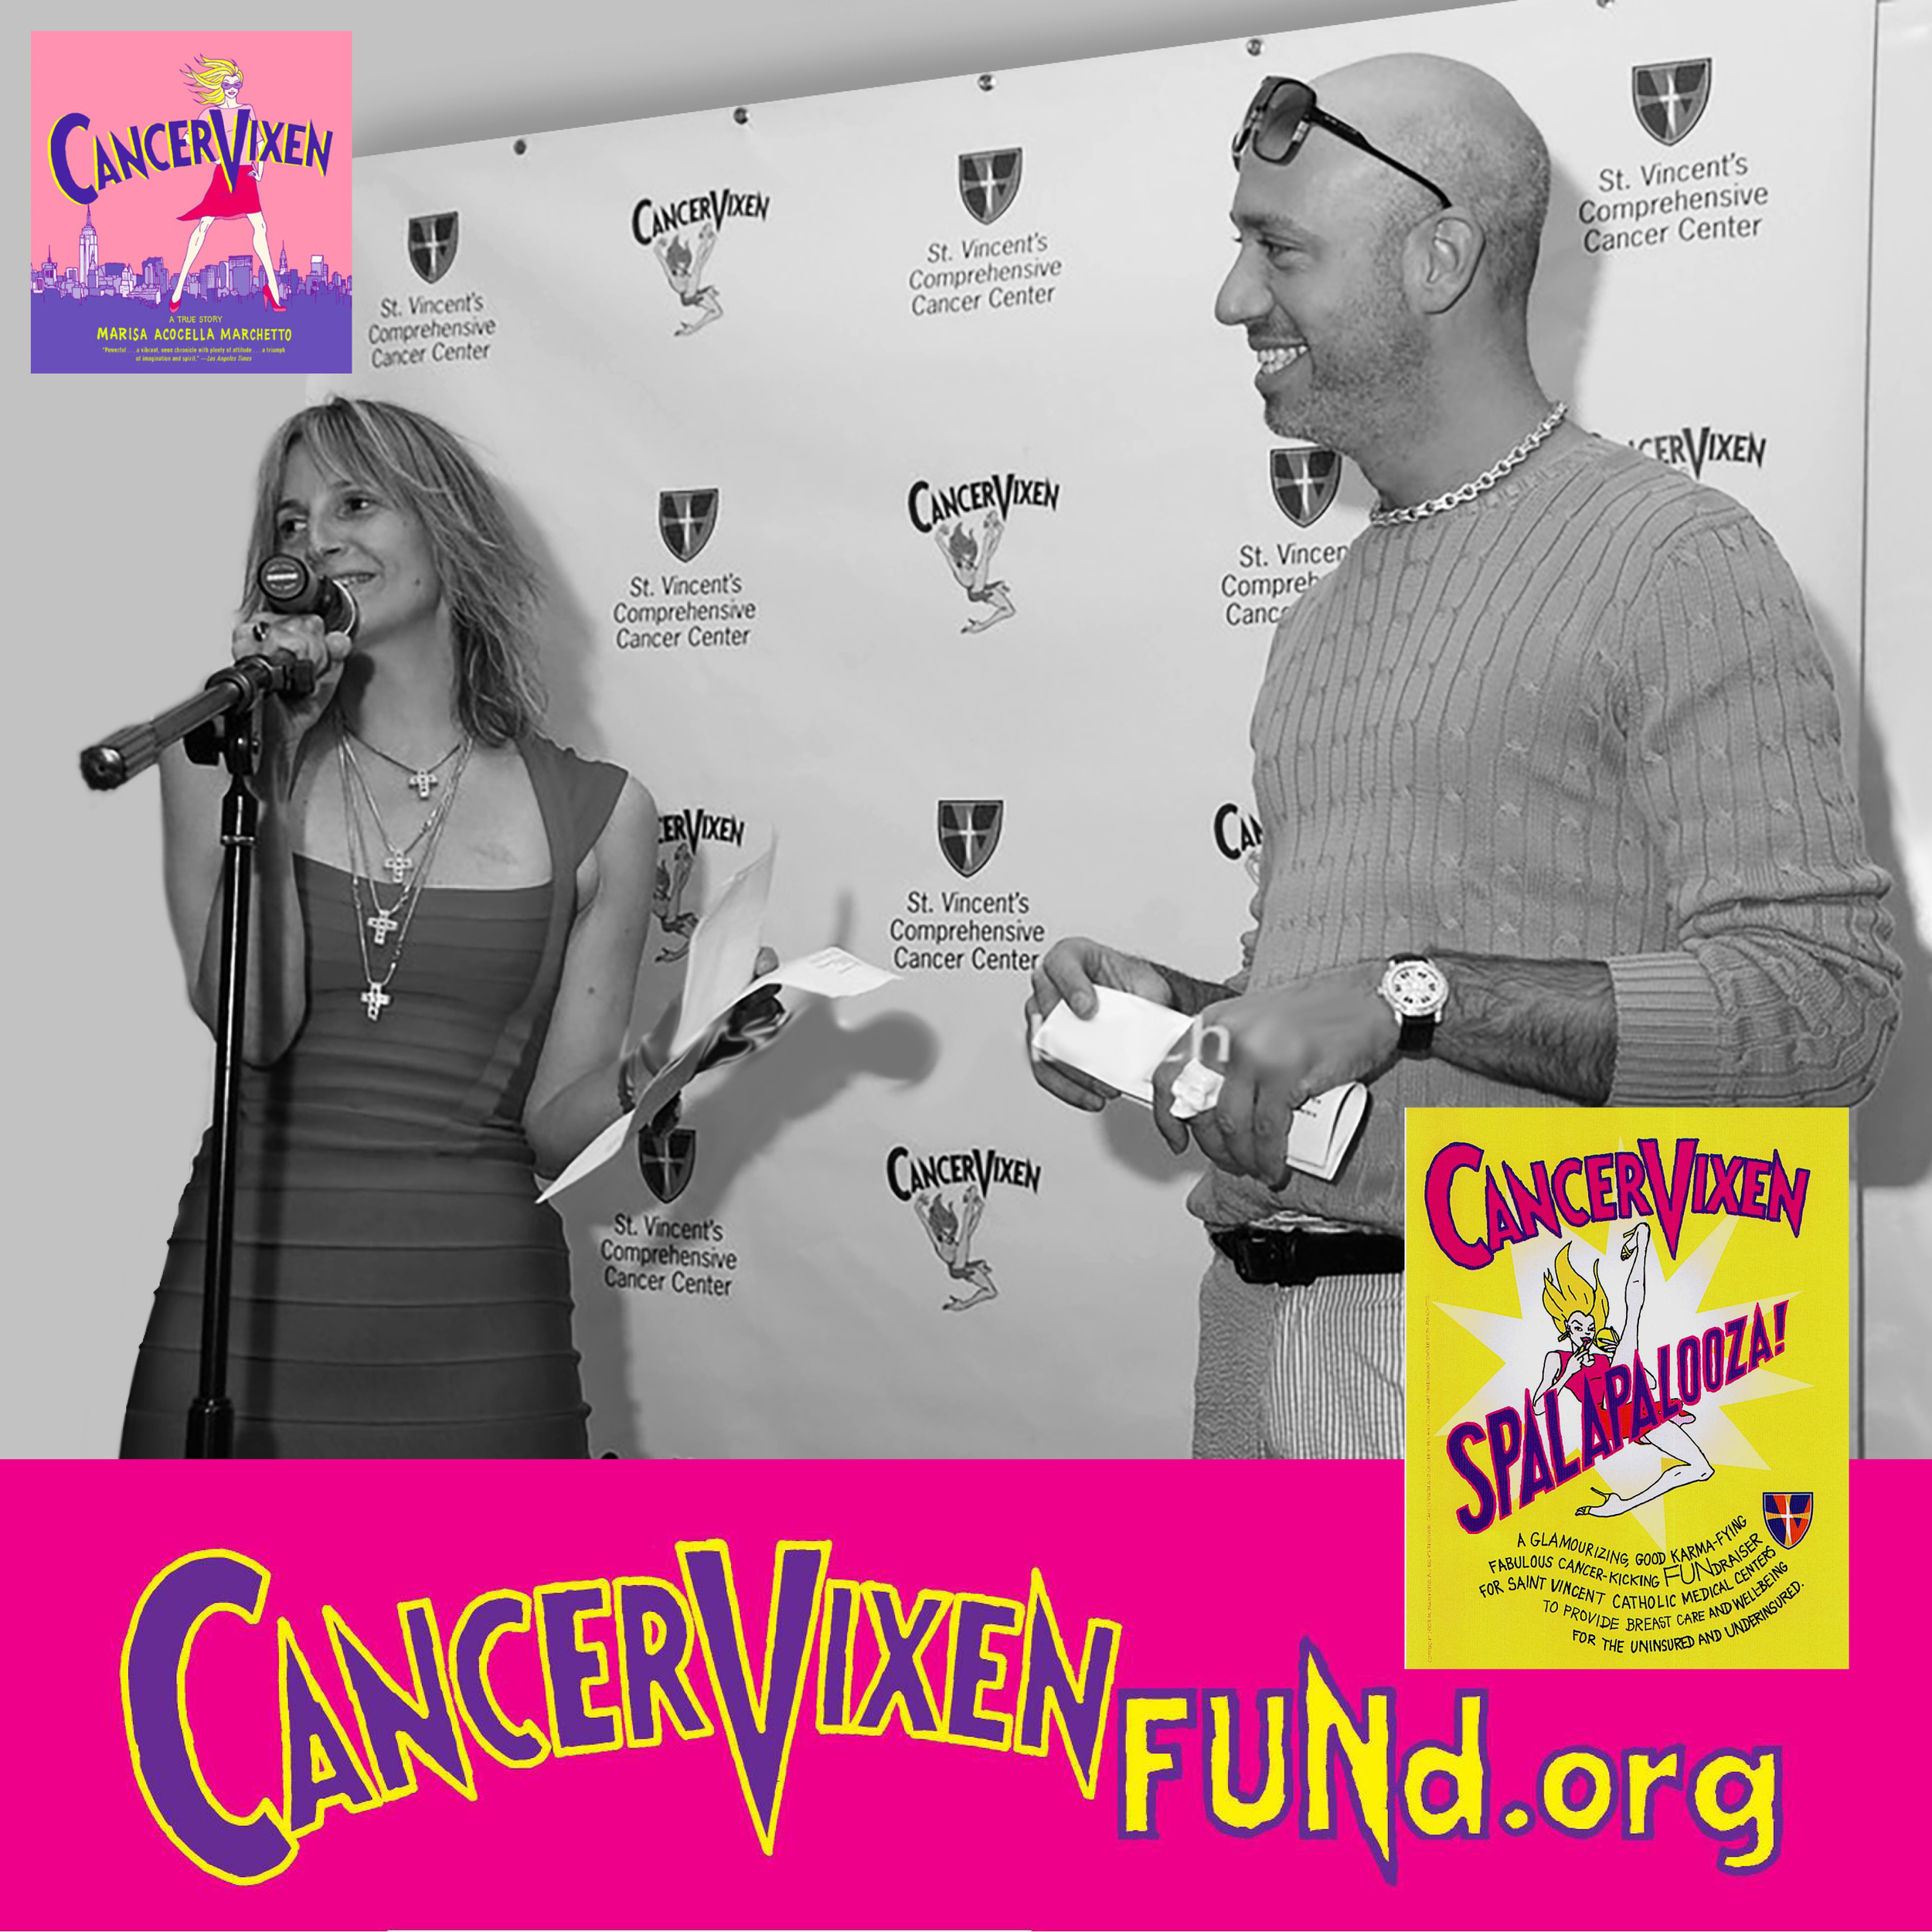 "The Cancer Vixen Fund  -  ""What happens when a shoe-crazy, lipstick-obsessed, wine-swilling, pasta-slurping, fashion-fanatic, about-to-get-married big-city girl cartoonist with a fabulous life finds . . . a lump in her breast?""  The mission of The Marisa Acocella Marchetto Foundation is to EMPOWER uninsured and underinsured women with breast cancer and breast cancer survivors to receive the best possible care for the best possible outcome without being concerned about the financial ramifications. Robert Verdi is proud to help support services from screenings to holistic care to new methods of empowerment.    http://marisaacocellamarchettofoundation.org/"